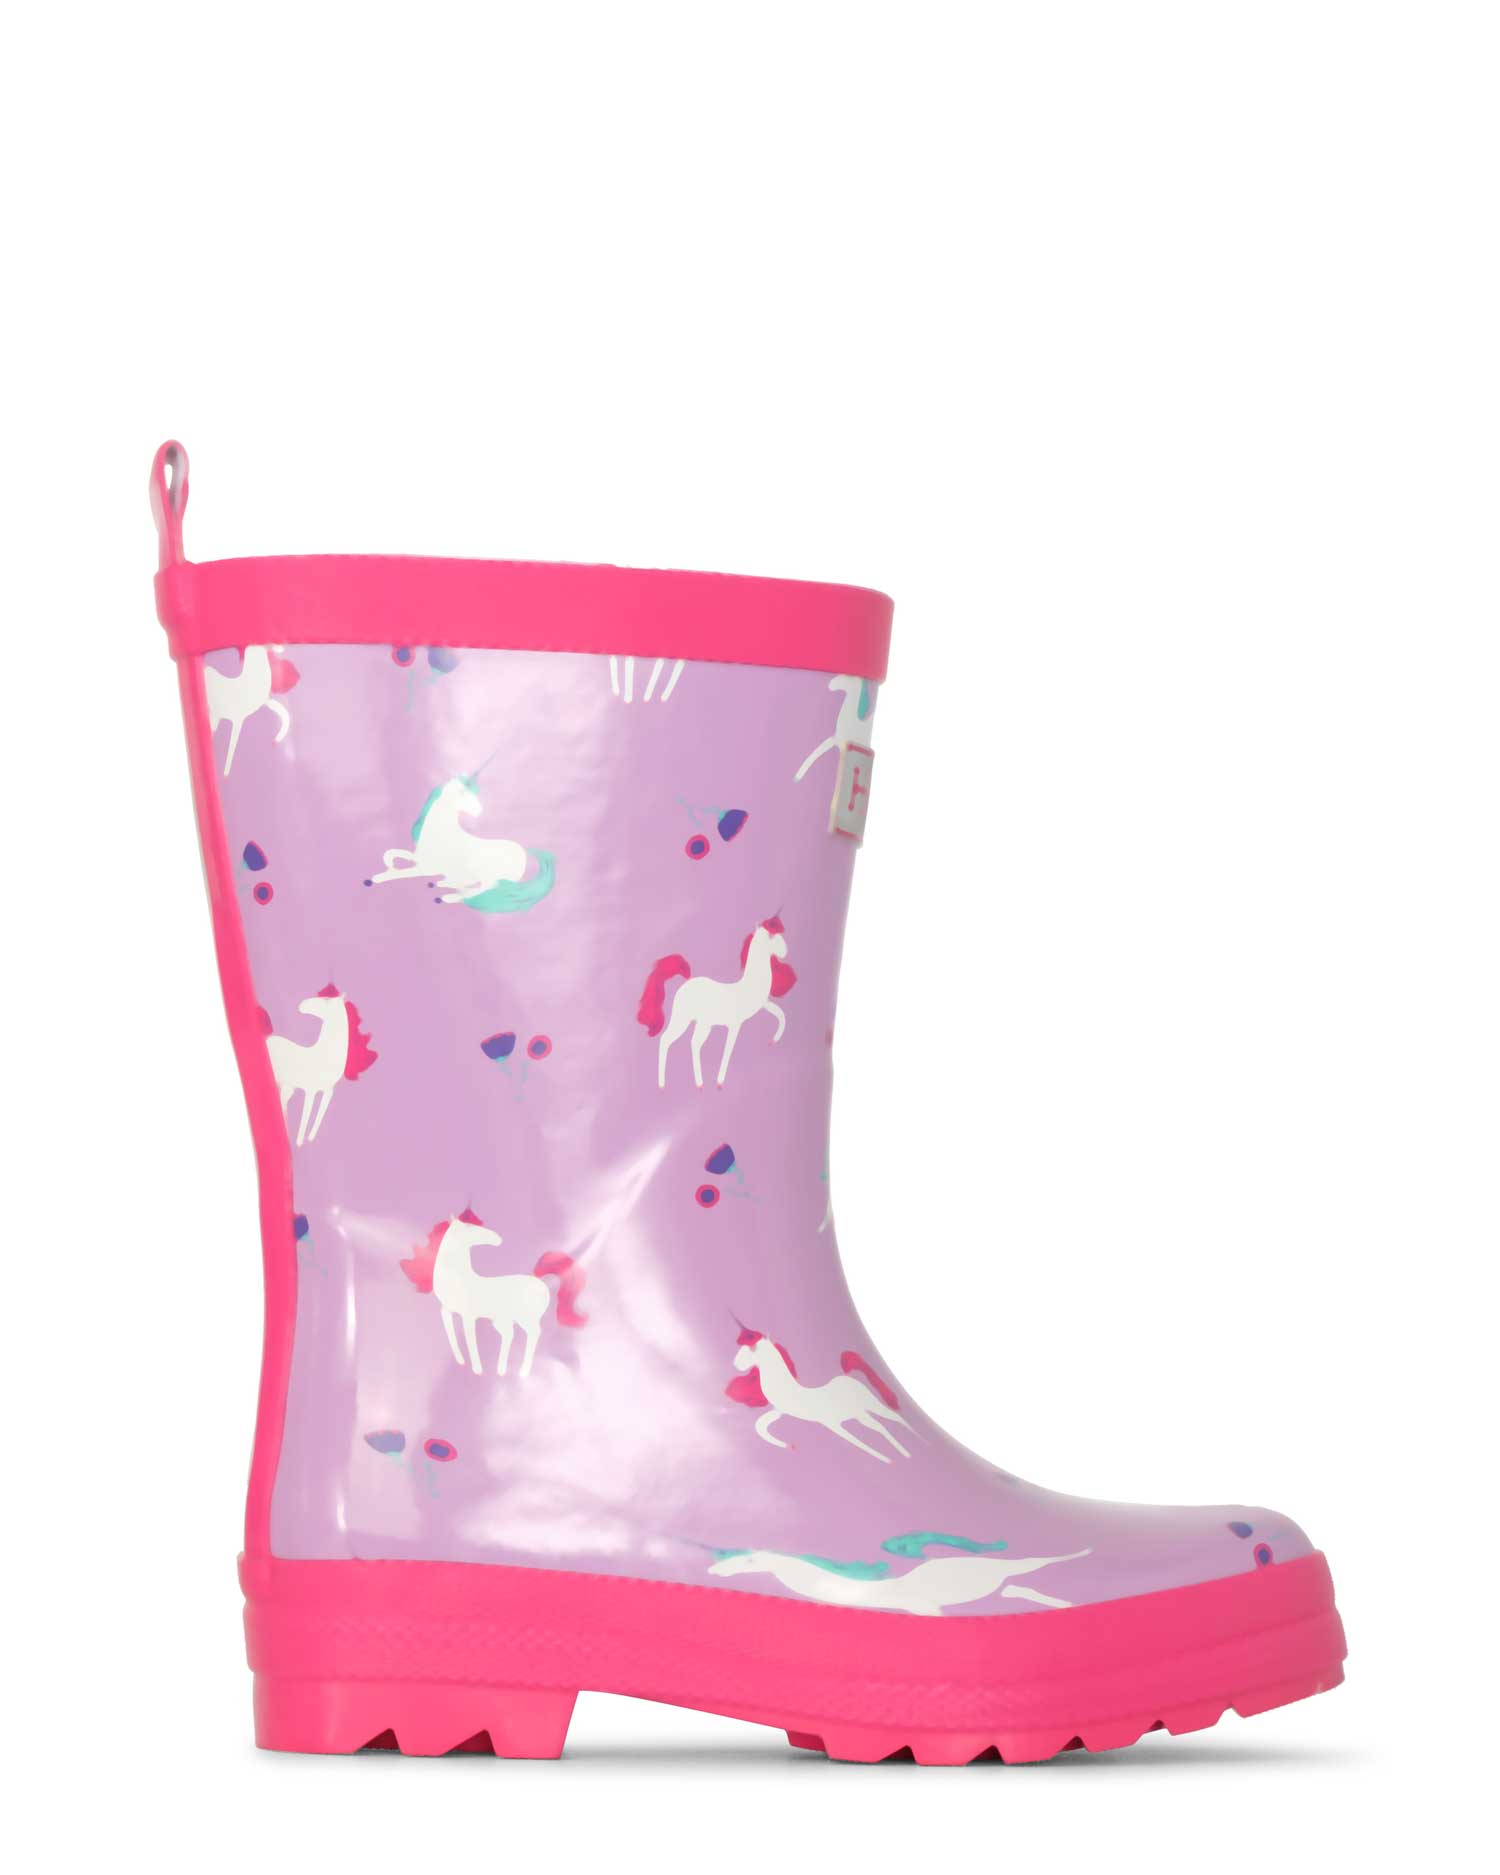 Playful Unicorns Shiny Gumboots